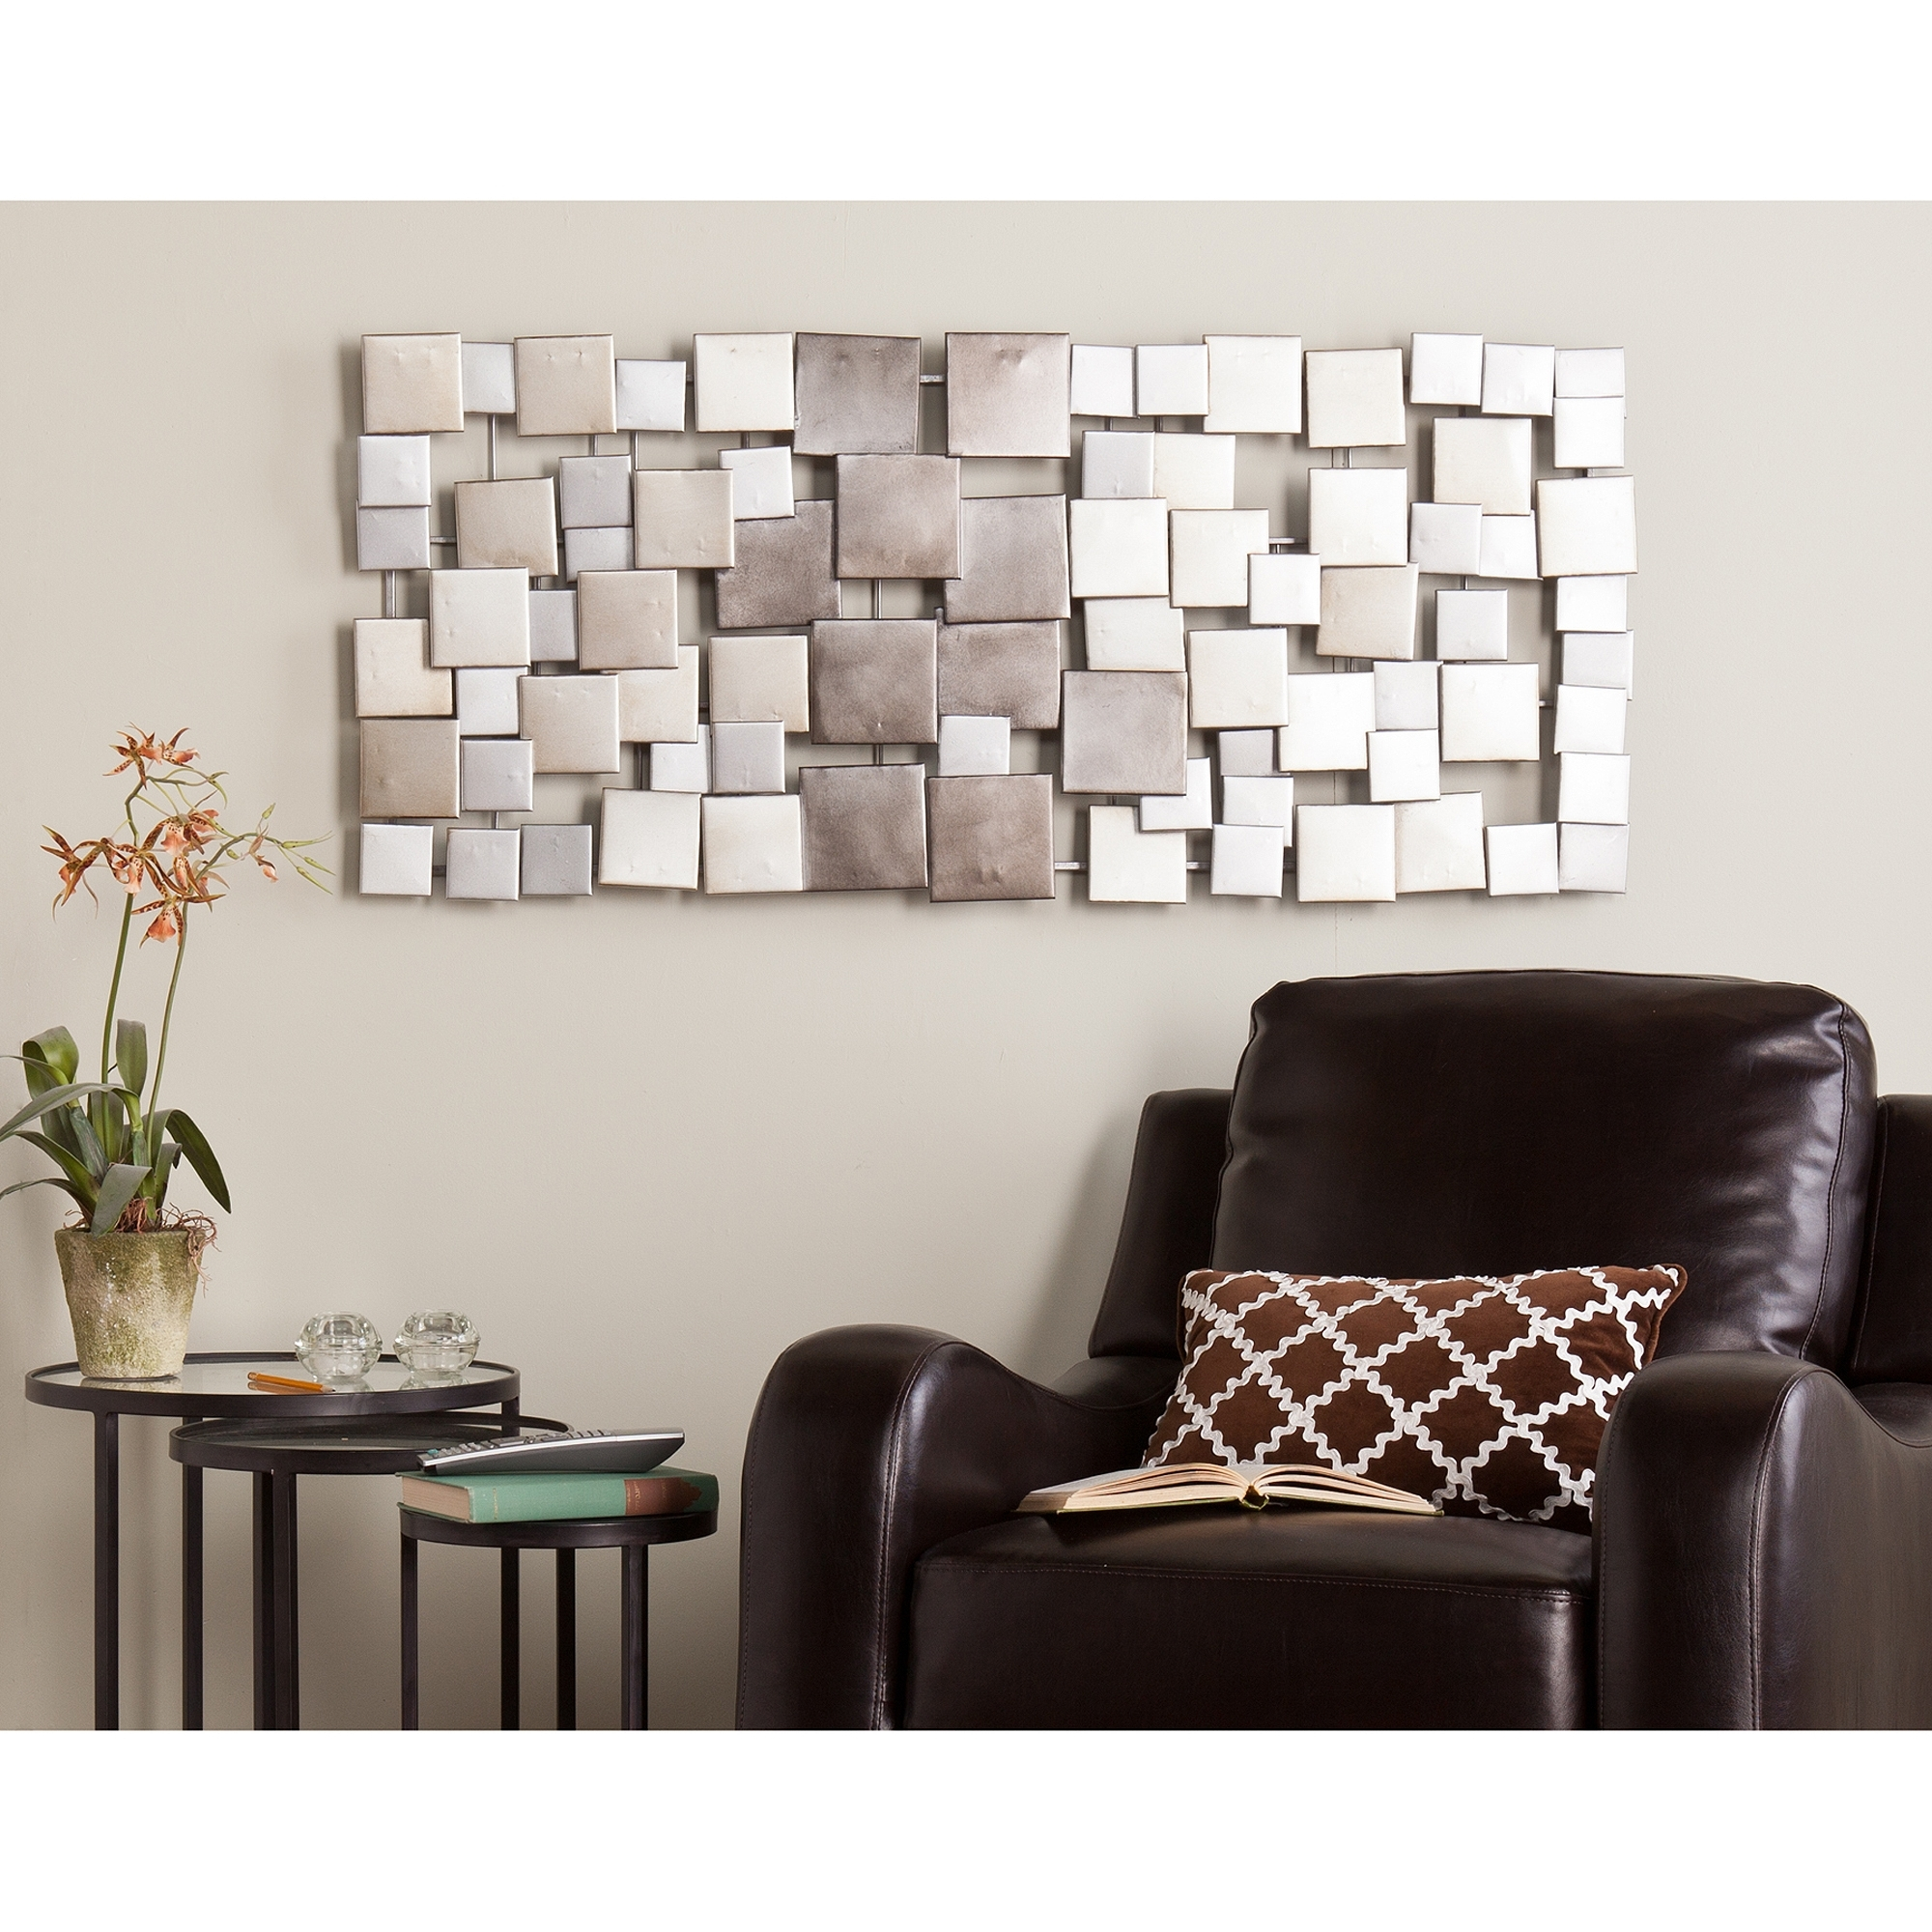 Most Up To Date Walmart Wall Art With Regard To Holly & Martin Wavson Wall Sculpture – Walmart (View 2 of 15)